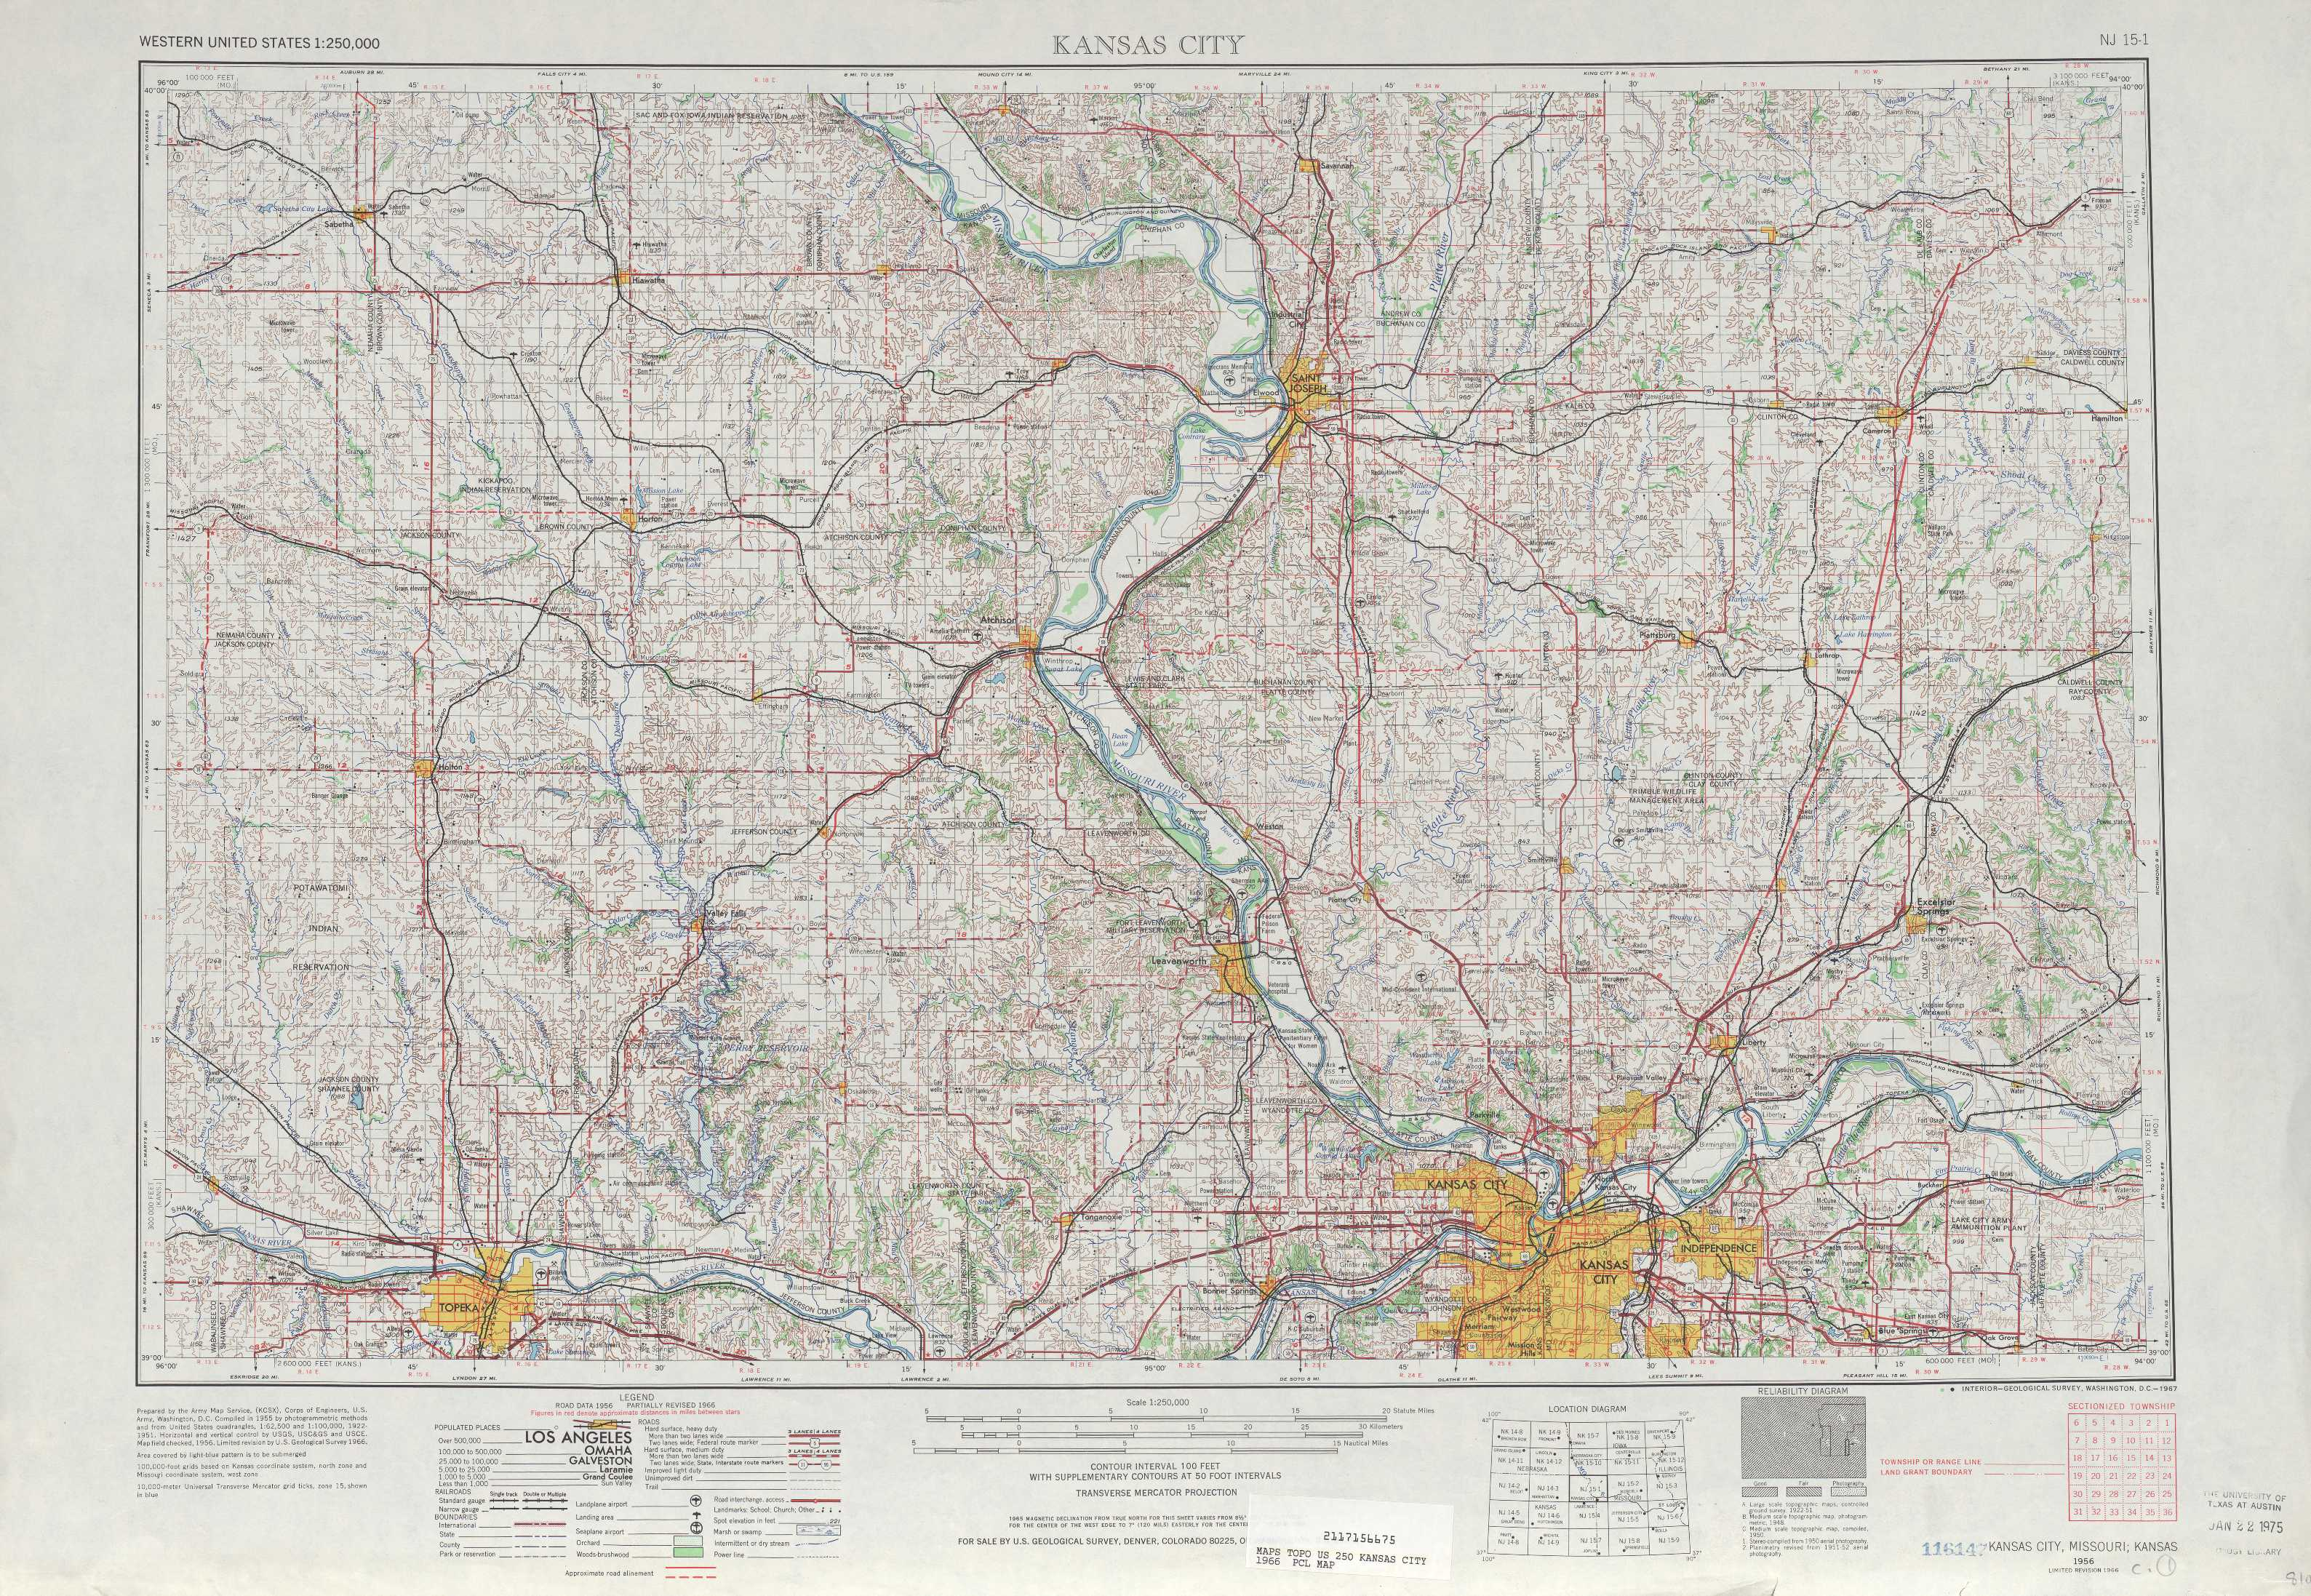 Kansas City topographic maps KS MO USGS Topo Quad 39094a1 at 1